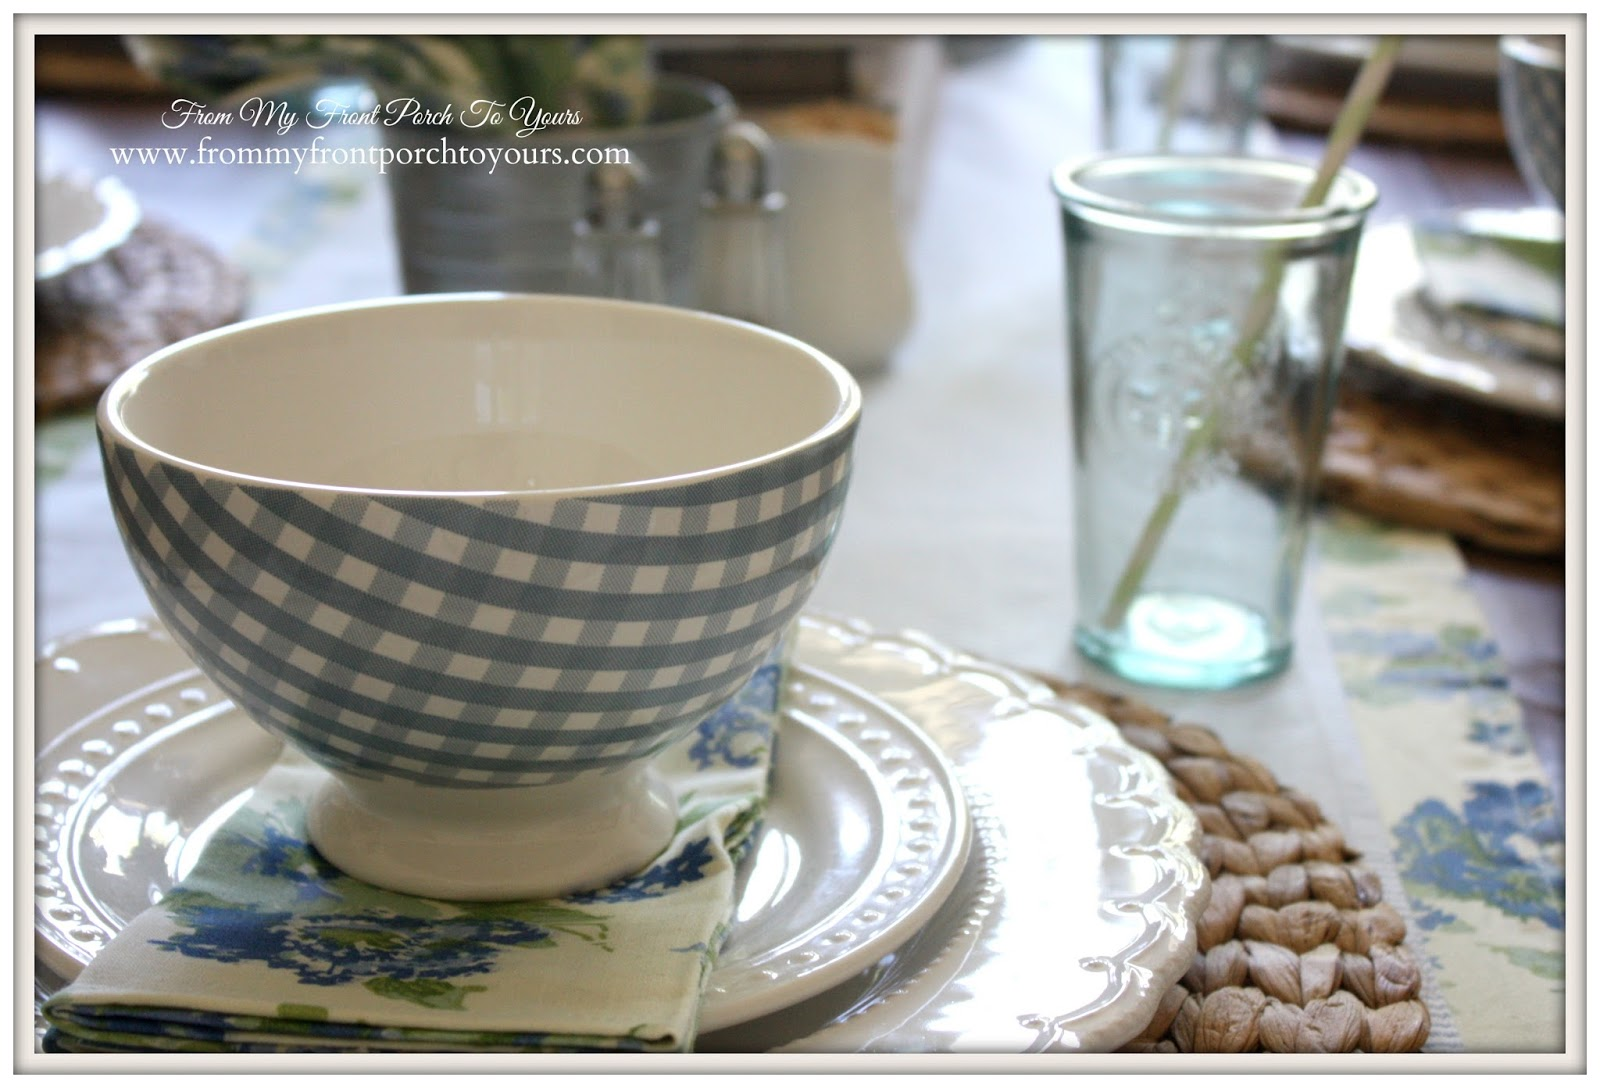 Farmhouse Spring Table Setting by From My Front Porch To Yours blog.